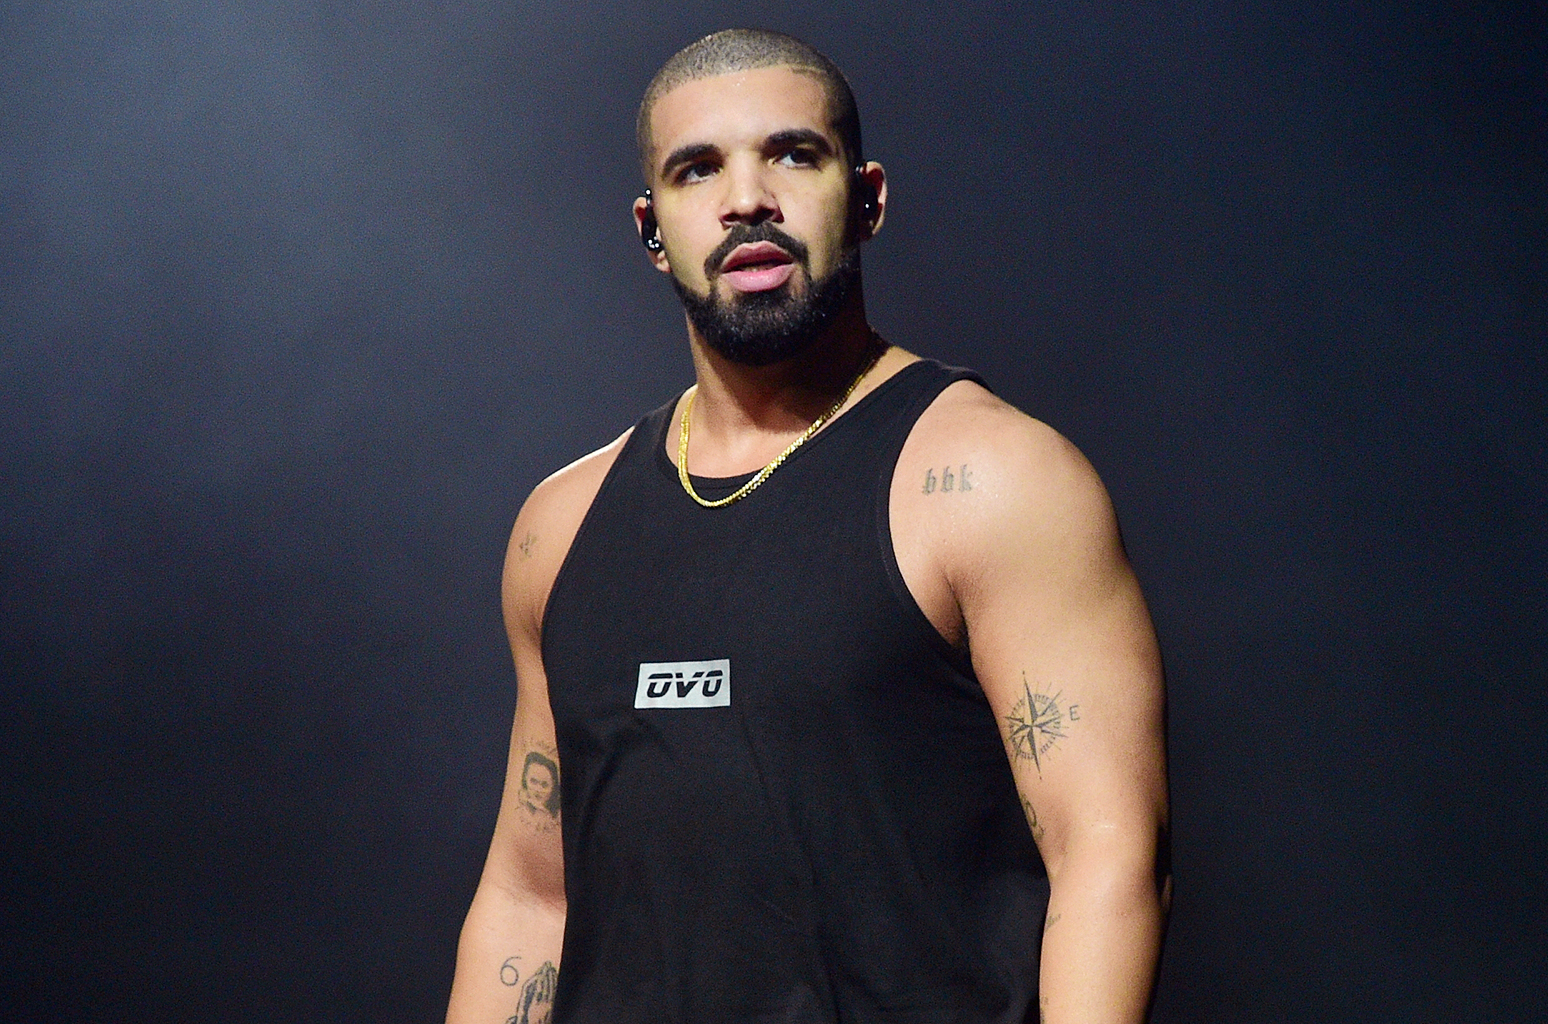 https://www.laoistoday.ie/wp-content/uploads/2017/08/drake-performance-aug-2016-billboard-1548.jpg